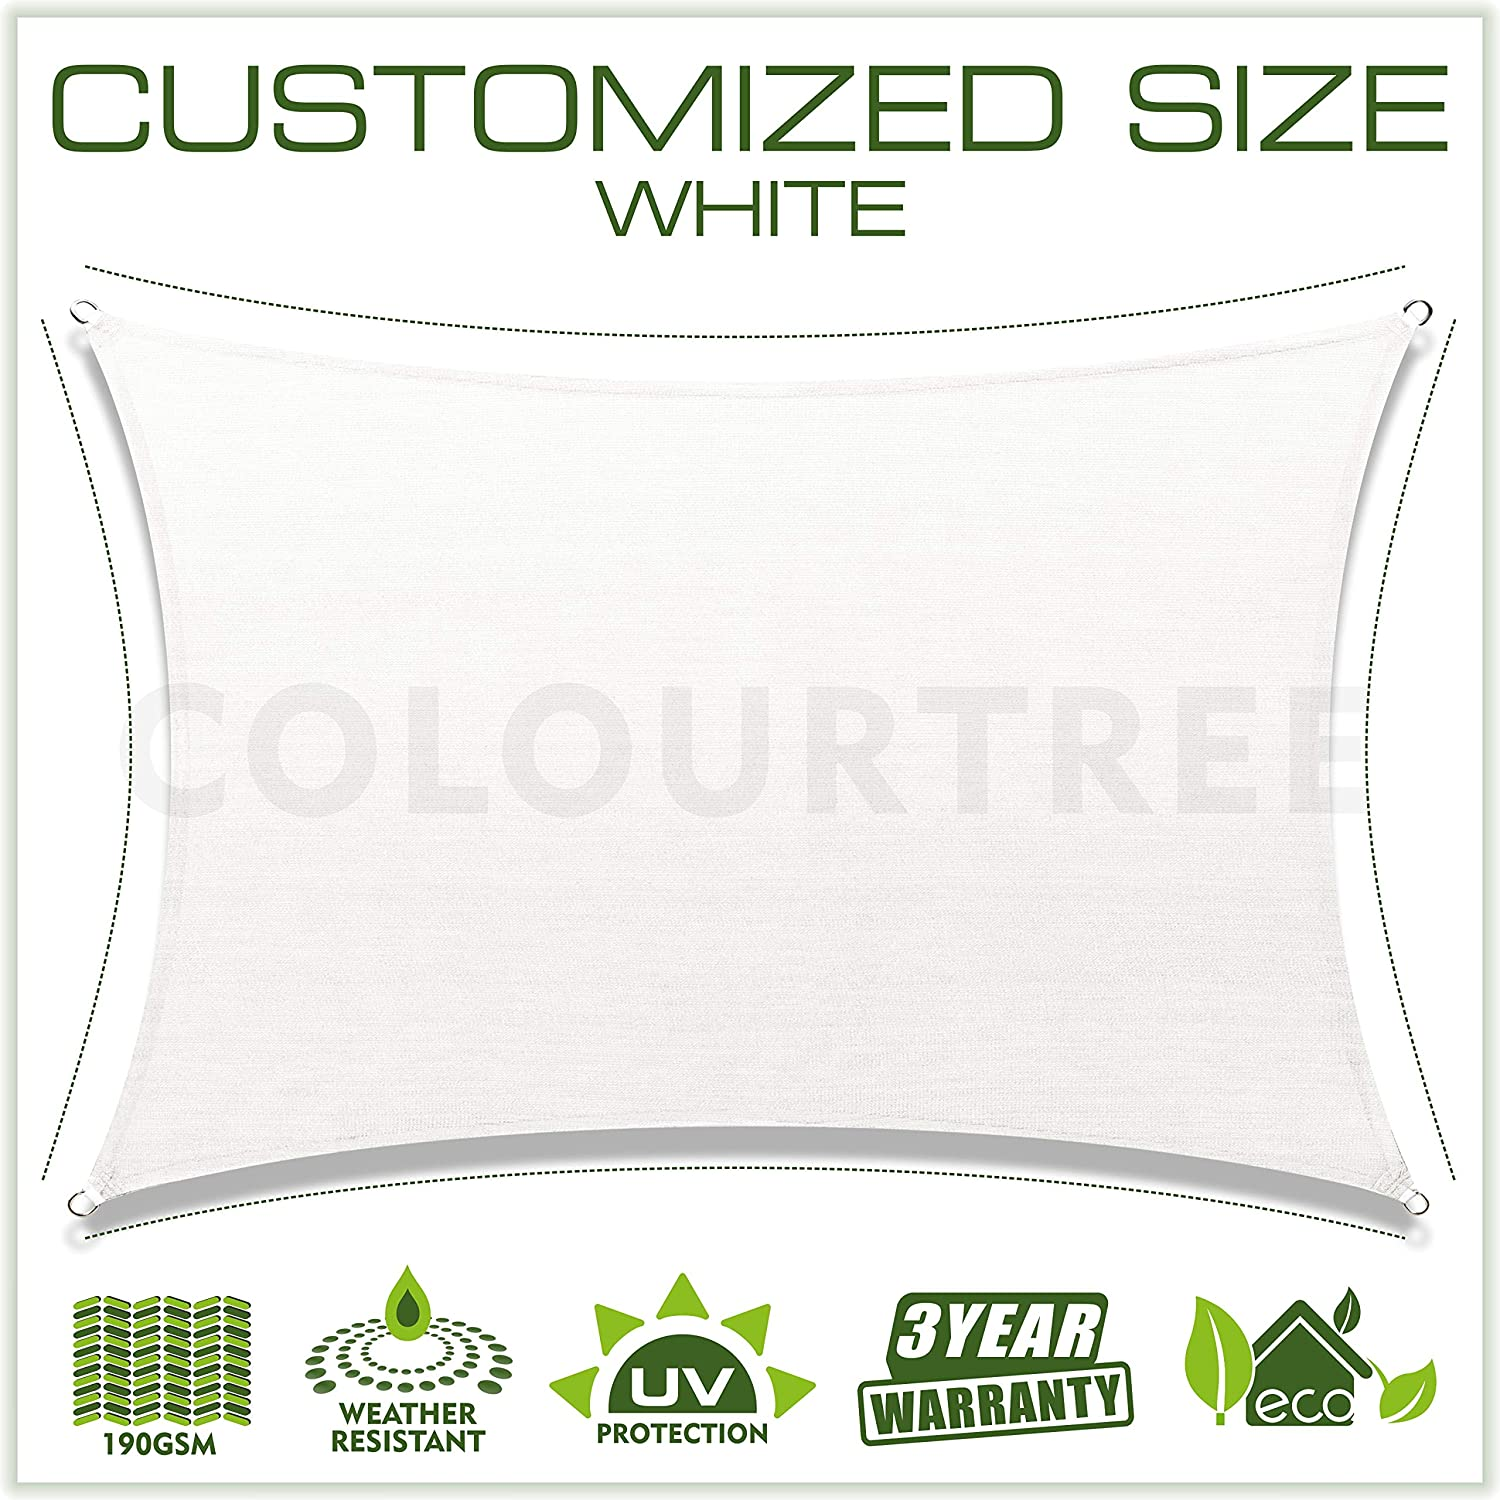 ColourTree Customized Size 6 x 6 White Sun Shade Sail Canopy UV Block Rectangle Commercial Standard Heavy Duty 190 GSM 3 Years Warranty